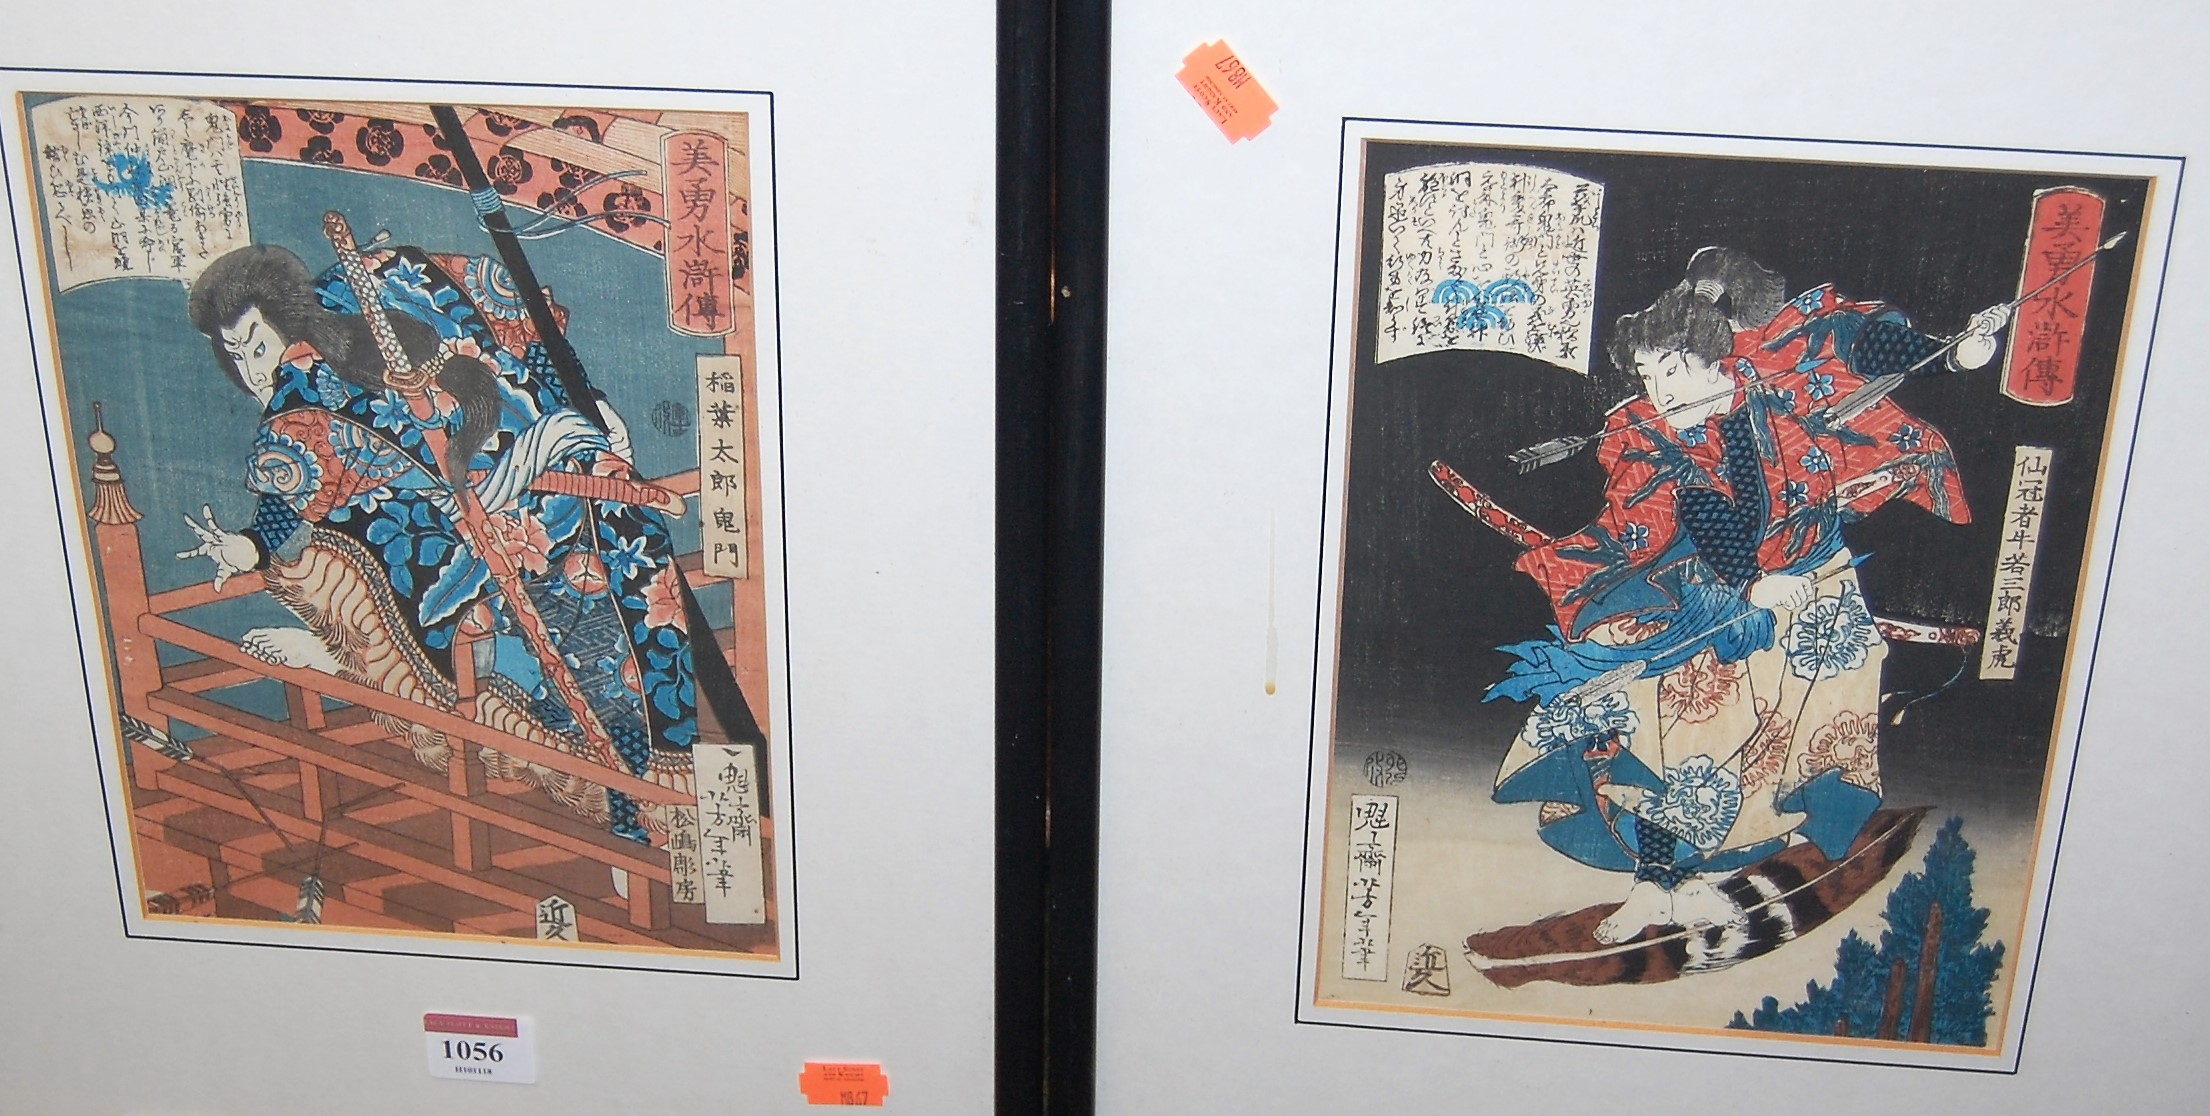 Lot 1056 - Two Japanese woodblock prints; contemporary monochrome architectural print; and a framed triptych of